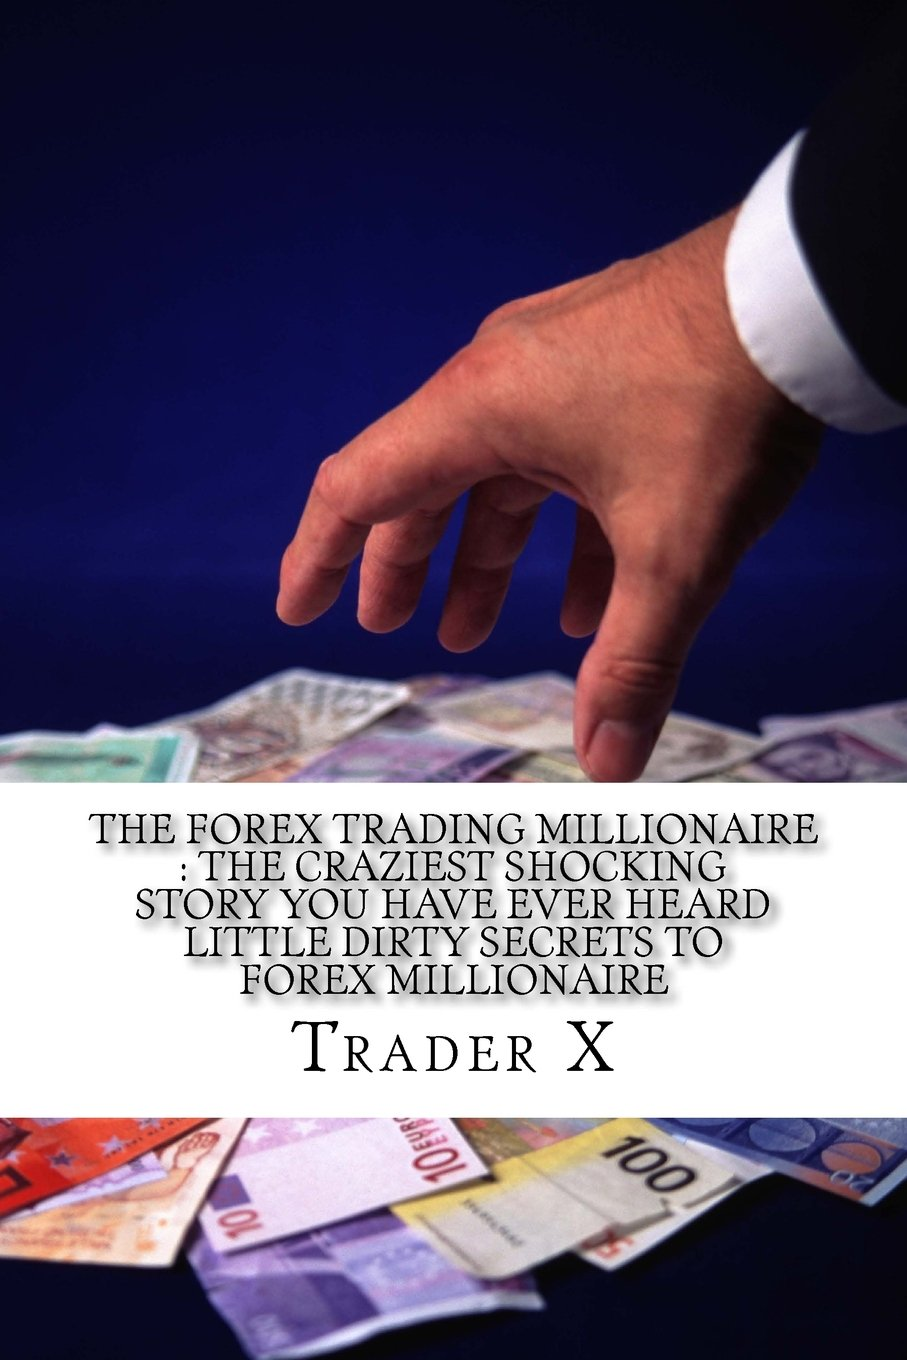 The Forex Trading Millionaire : The Craziest Shocking Story You Have Ever Heard Little Dirty Secrets To Forex Millionaire: How I Finally Spilled The Beans To Cracking The Code To Forex Millinaire